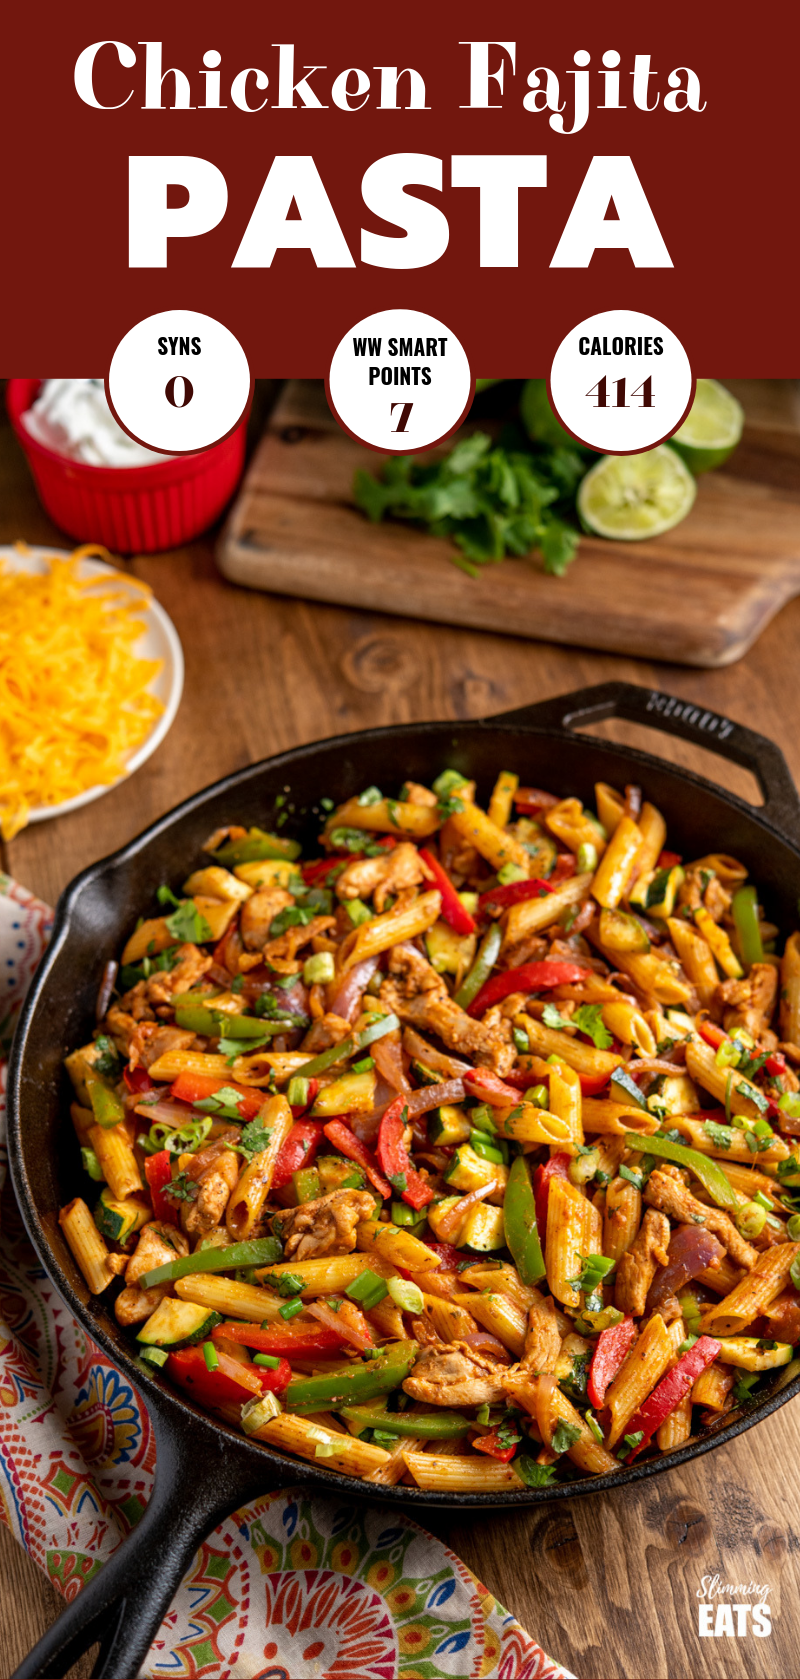 Fajita Chicken Pasta pin image